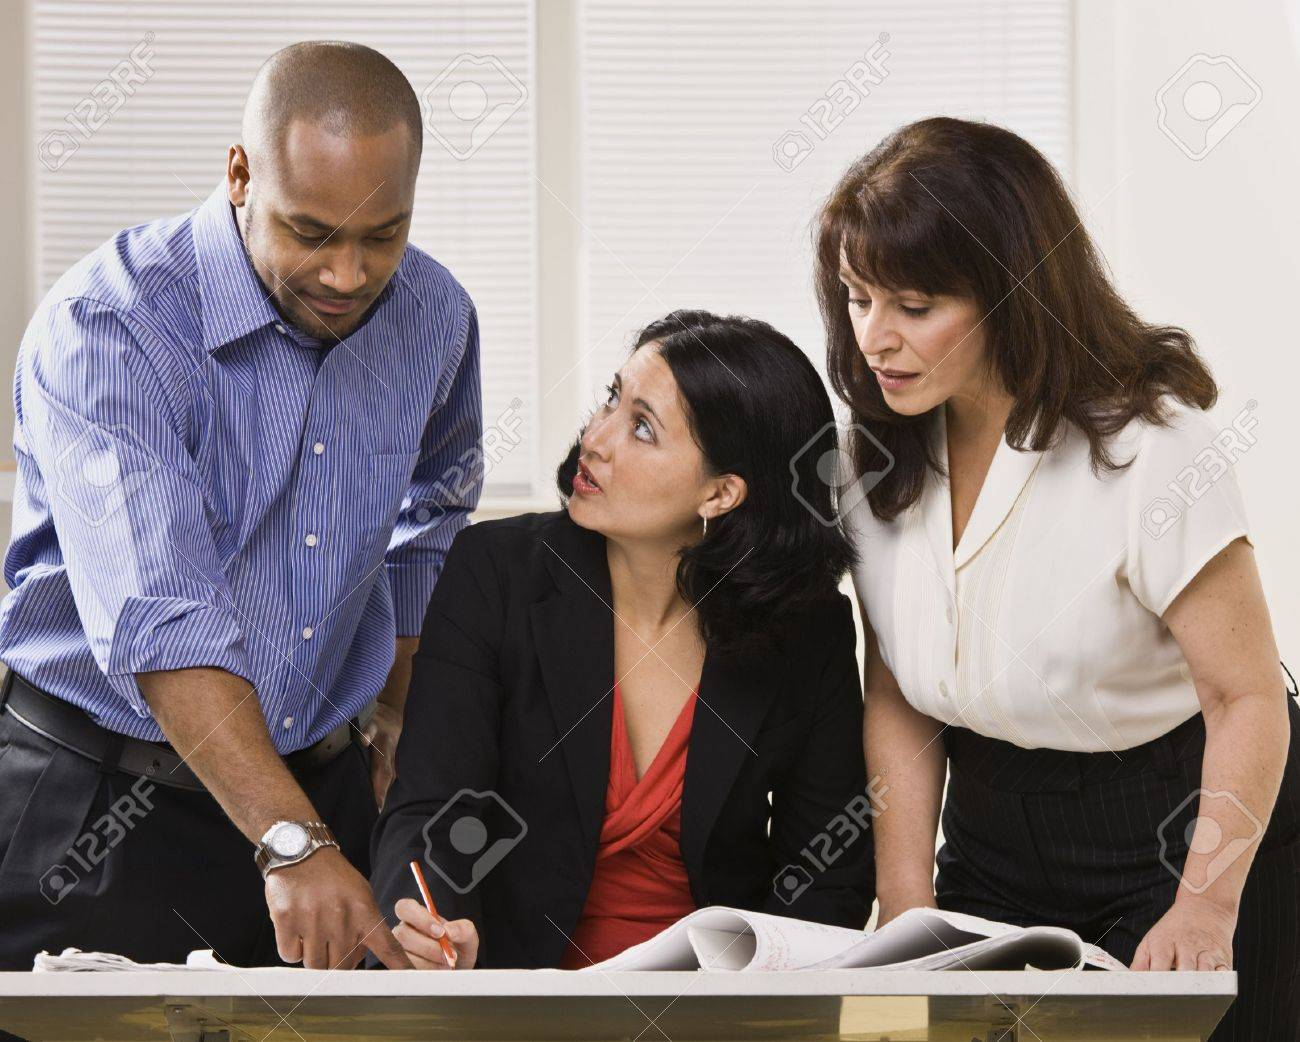 A group of business people are in an office and are looking at some paperwork.  They are talking and looking away from the camera.  Horizontally framed shot. Stock Photo - 5334046